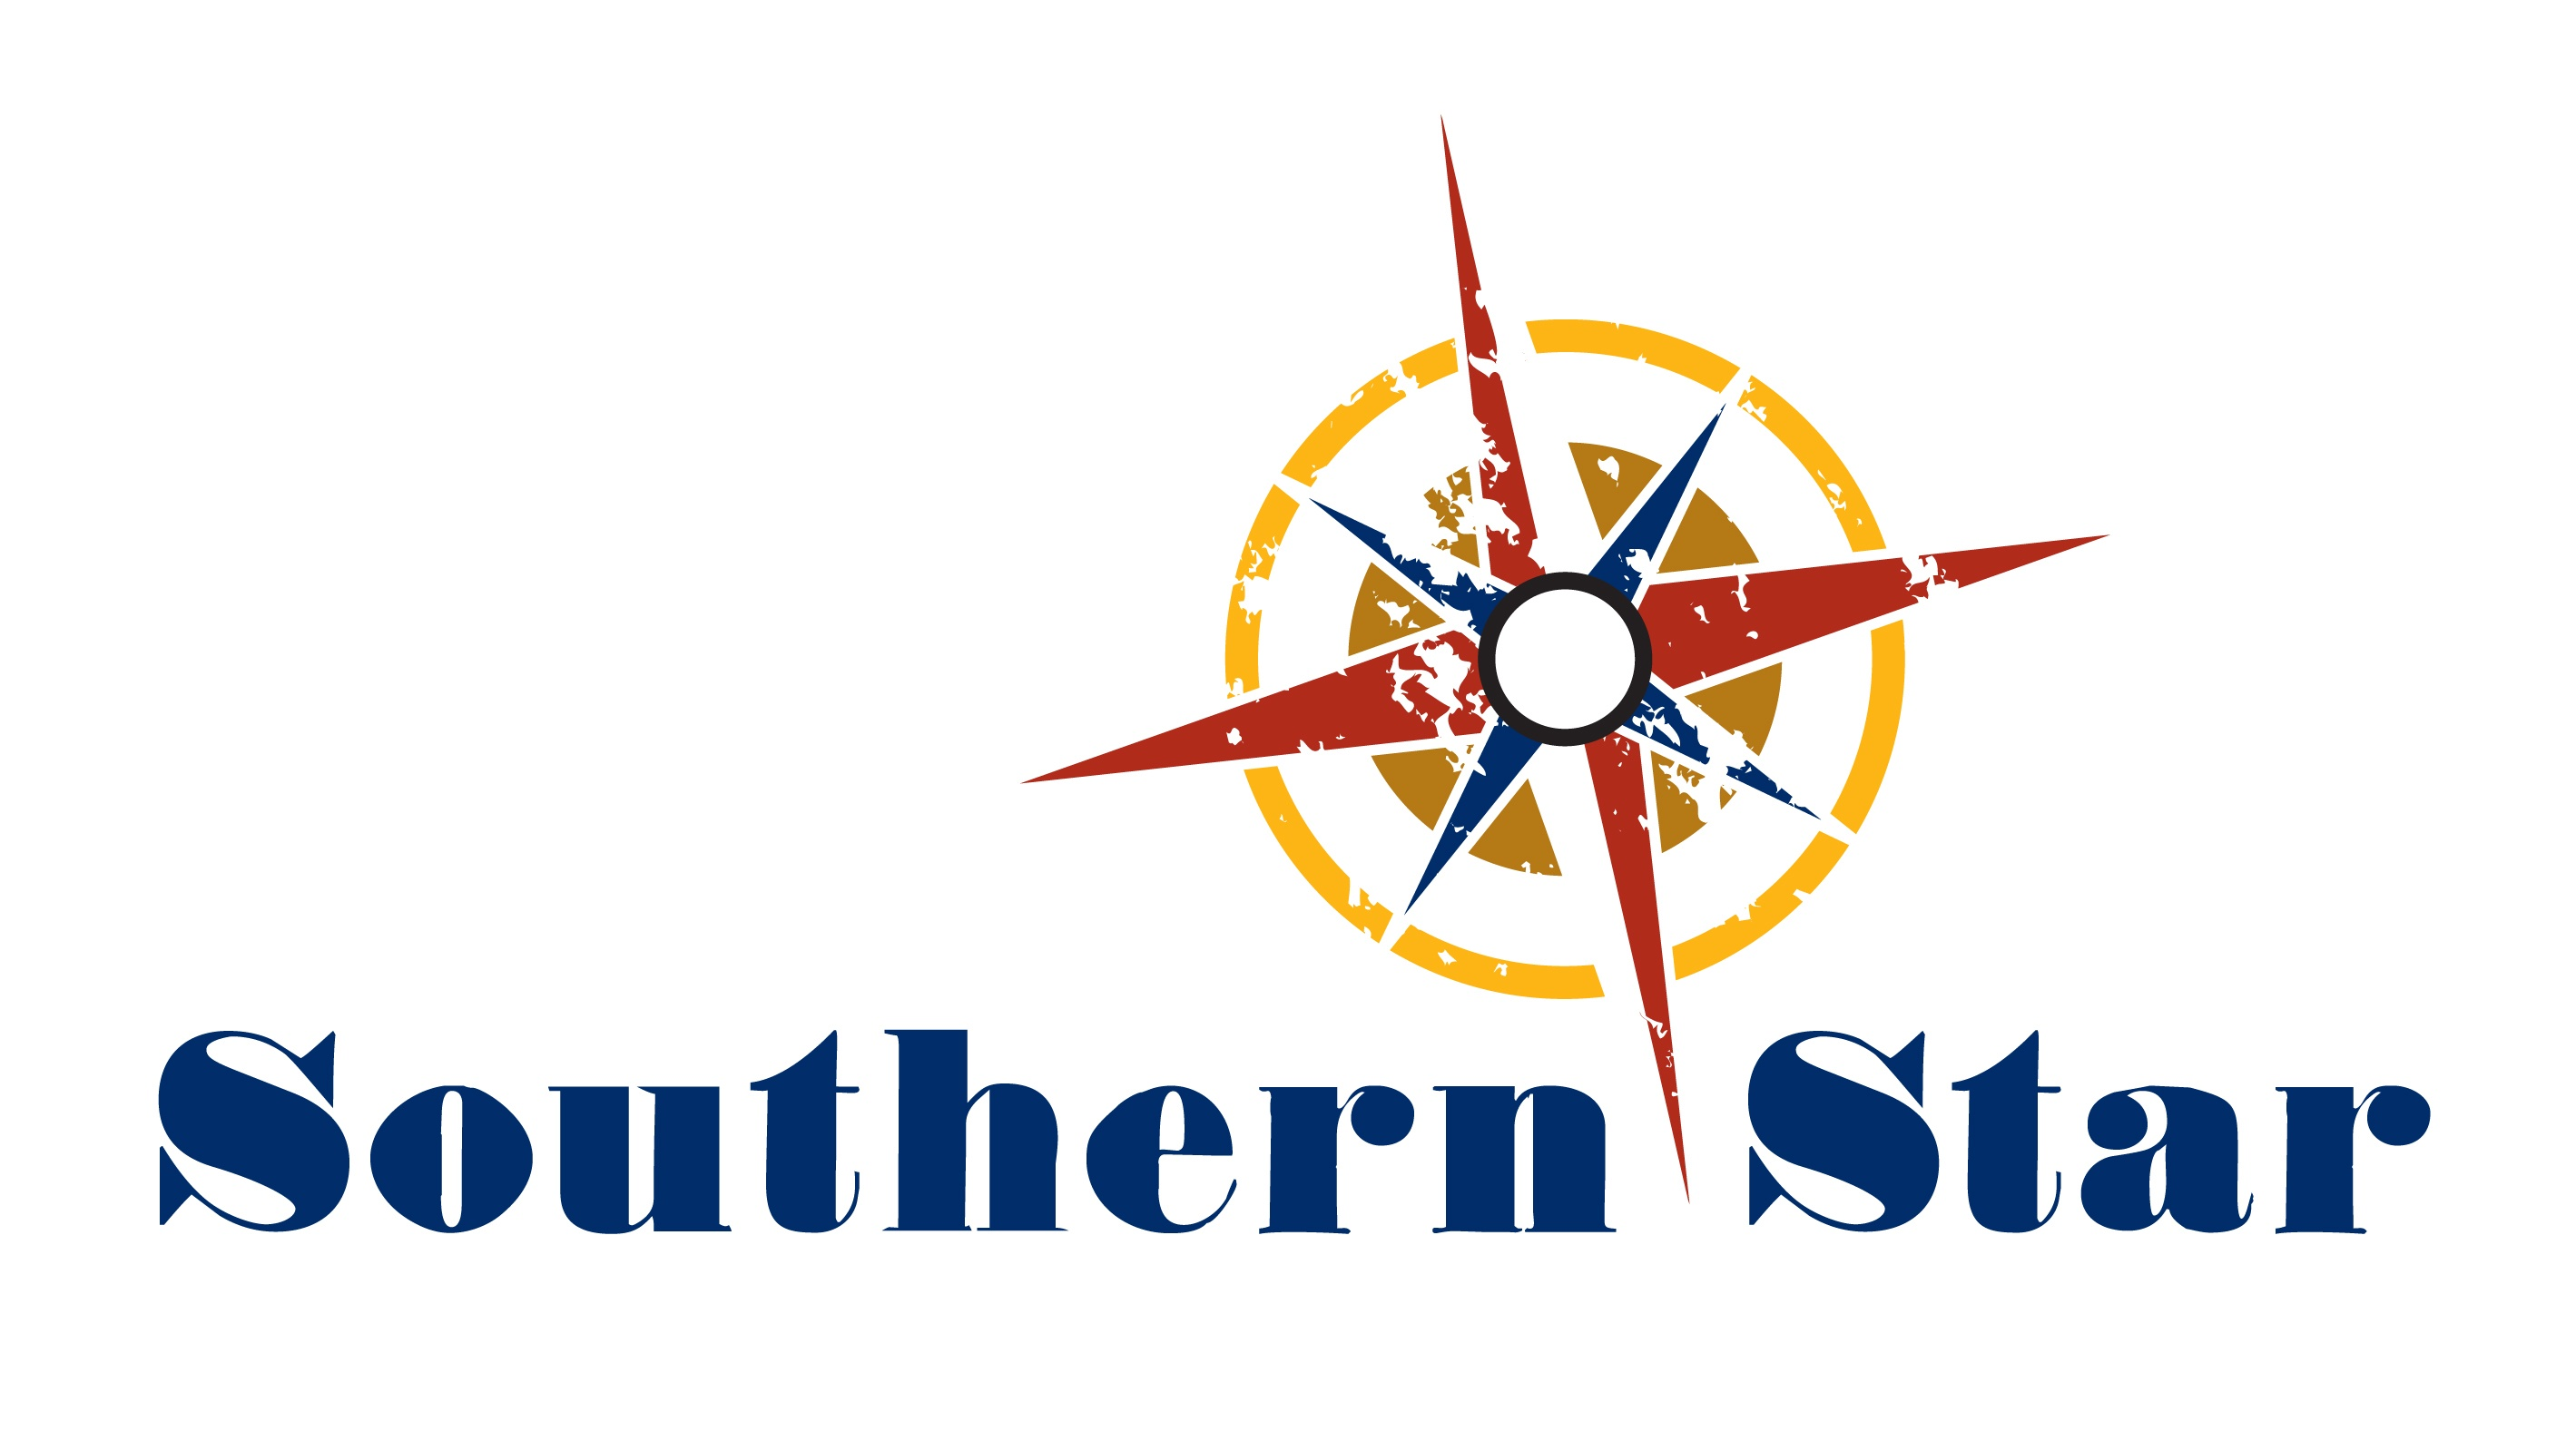 <a http://raydientplaces.com/Community/t/1982> Southern Star </a>